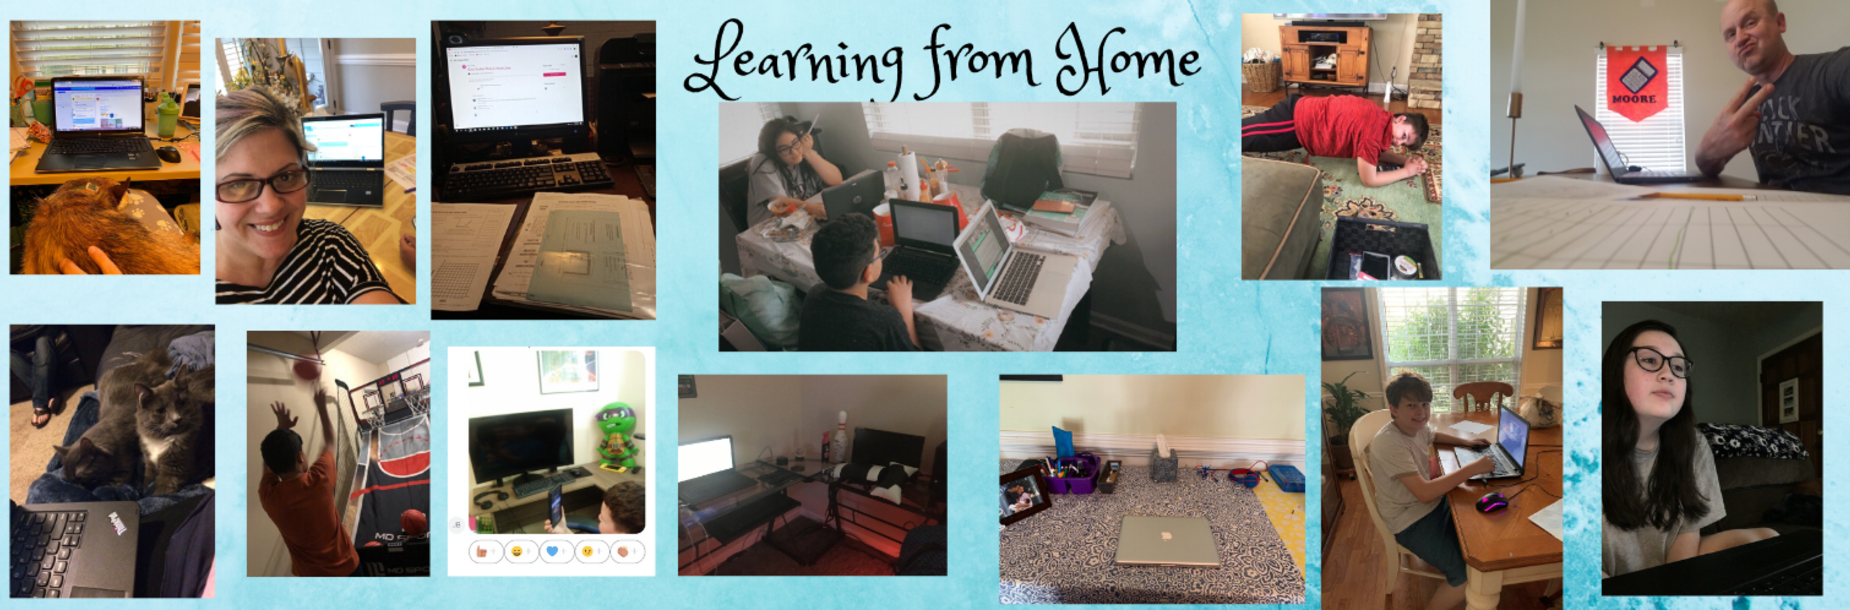 Pictures of students and teachers during Learning from Home time